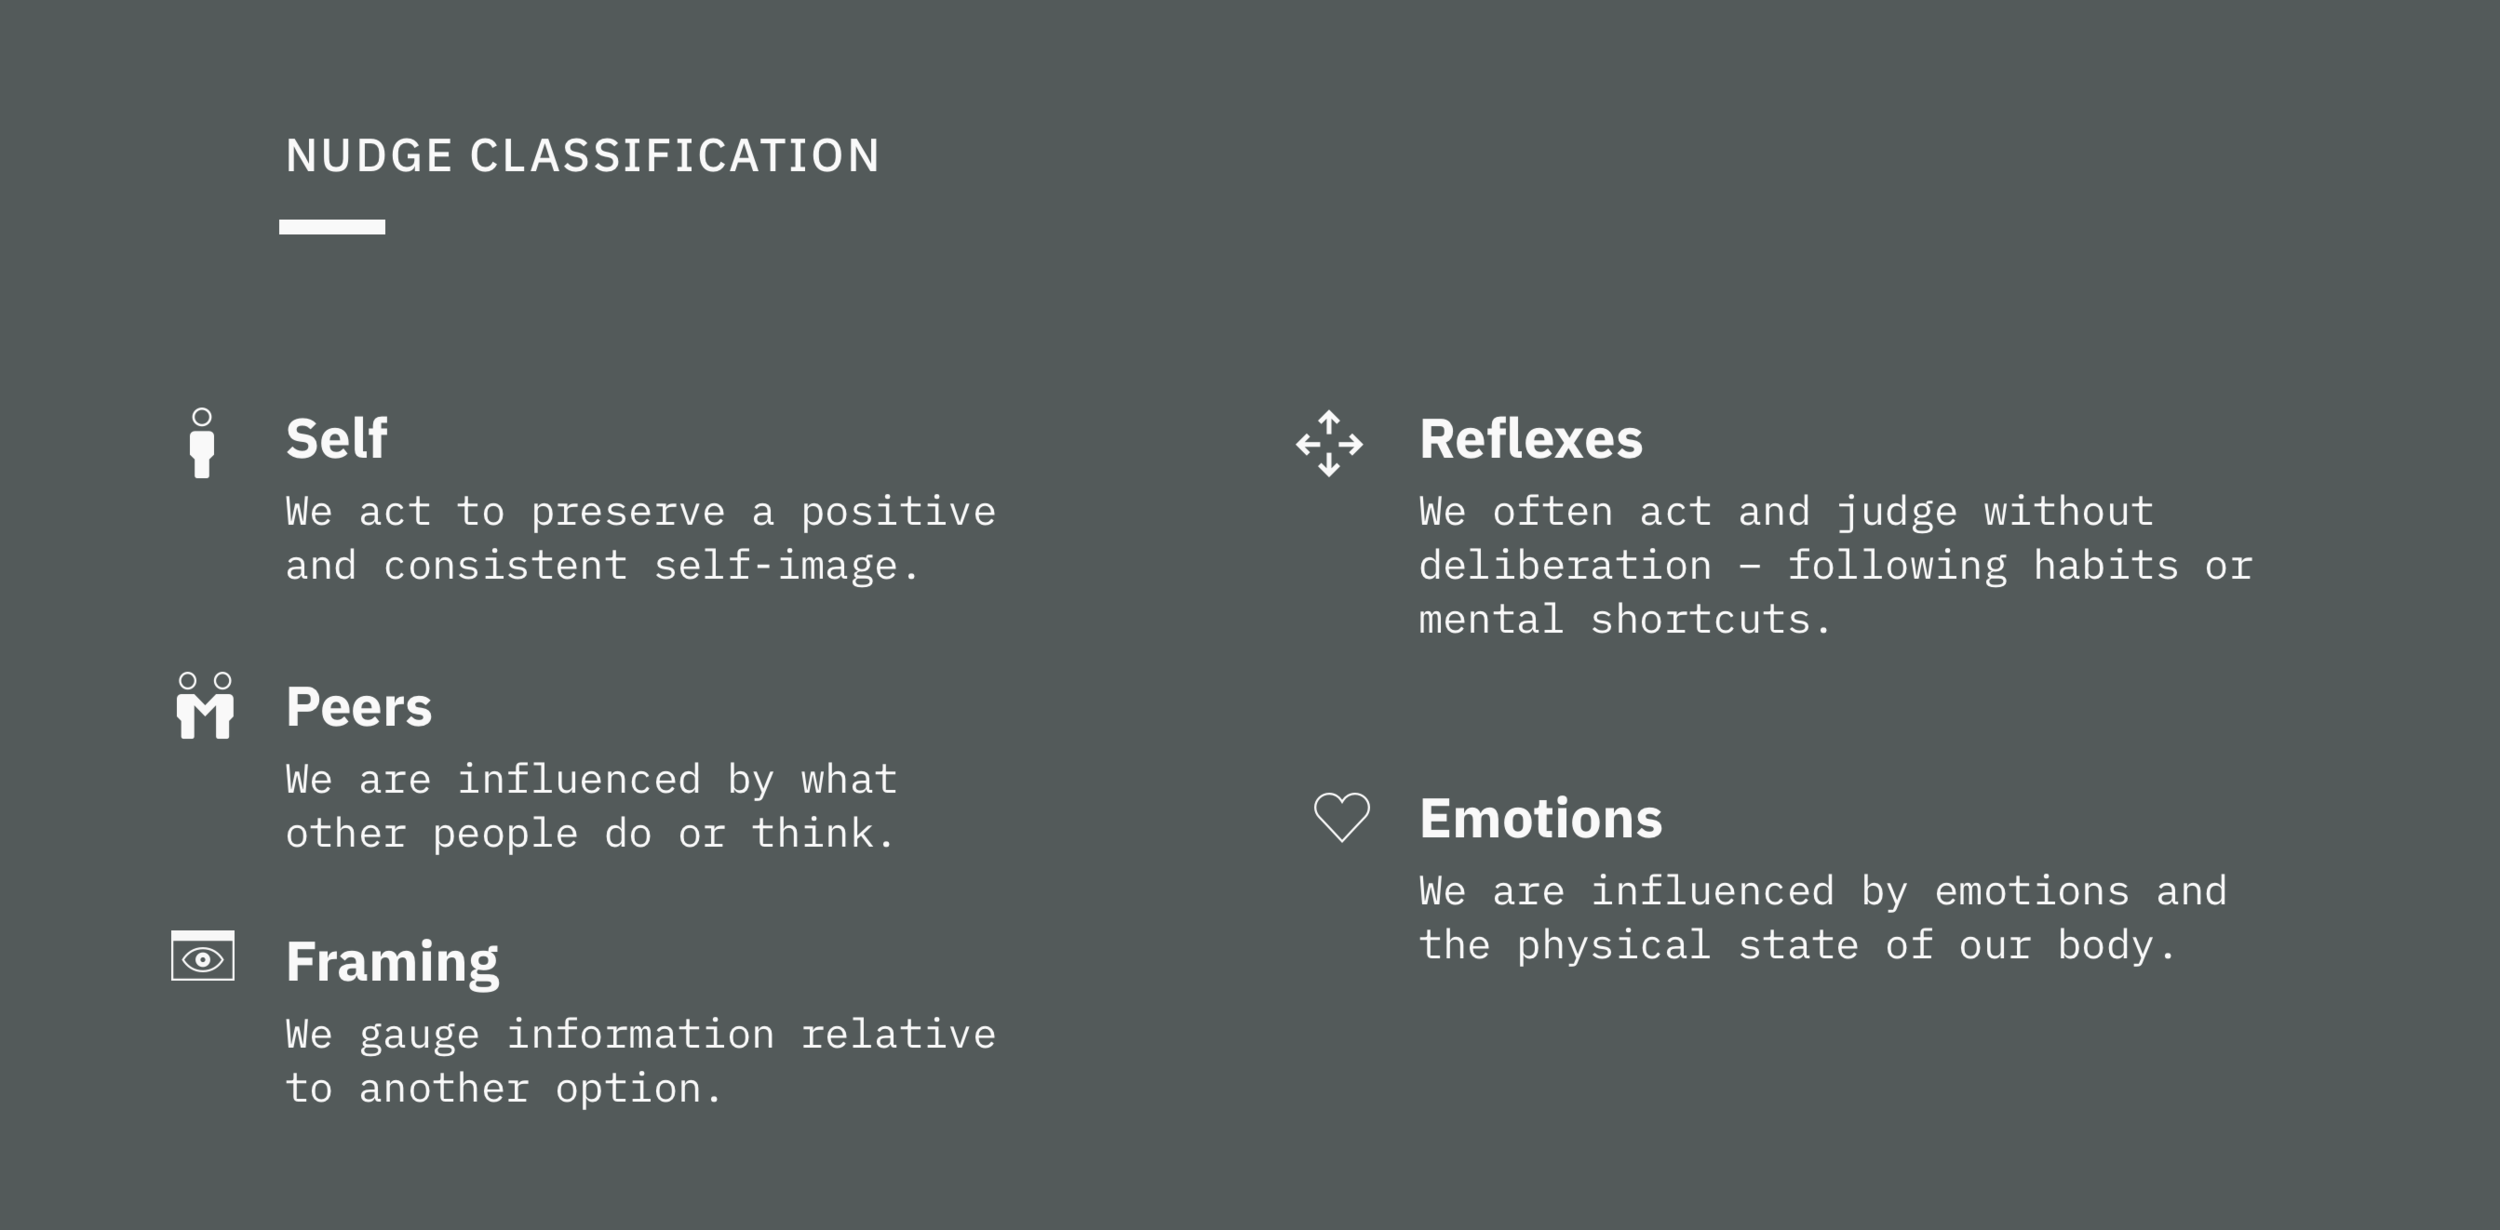 Classifications - Nudges can be placed in different categories of human behavior. We act to preserve a certain image, gauge information relative to our environment, make judgements according to our ingrained habits, or our emotions. You can filter the library by these categories to find the right nudge you want to use.